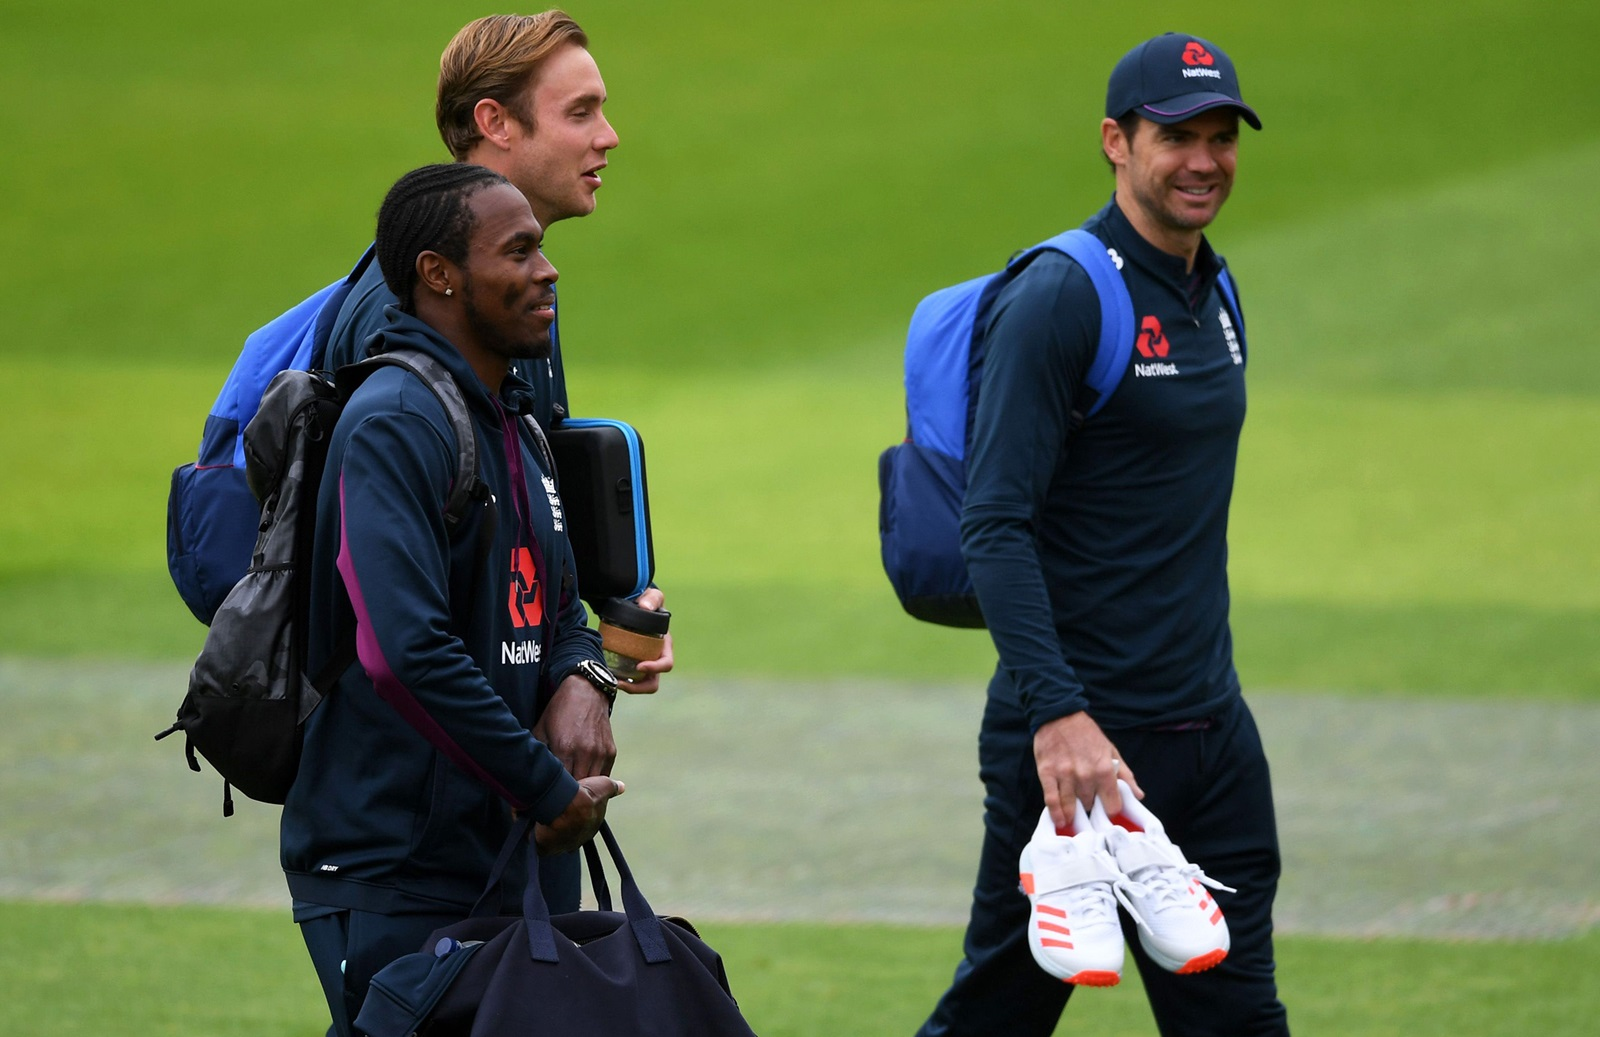 James Anderson, Stuart Broad and Jofra Archer (Getty)